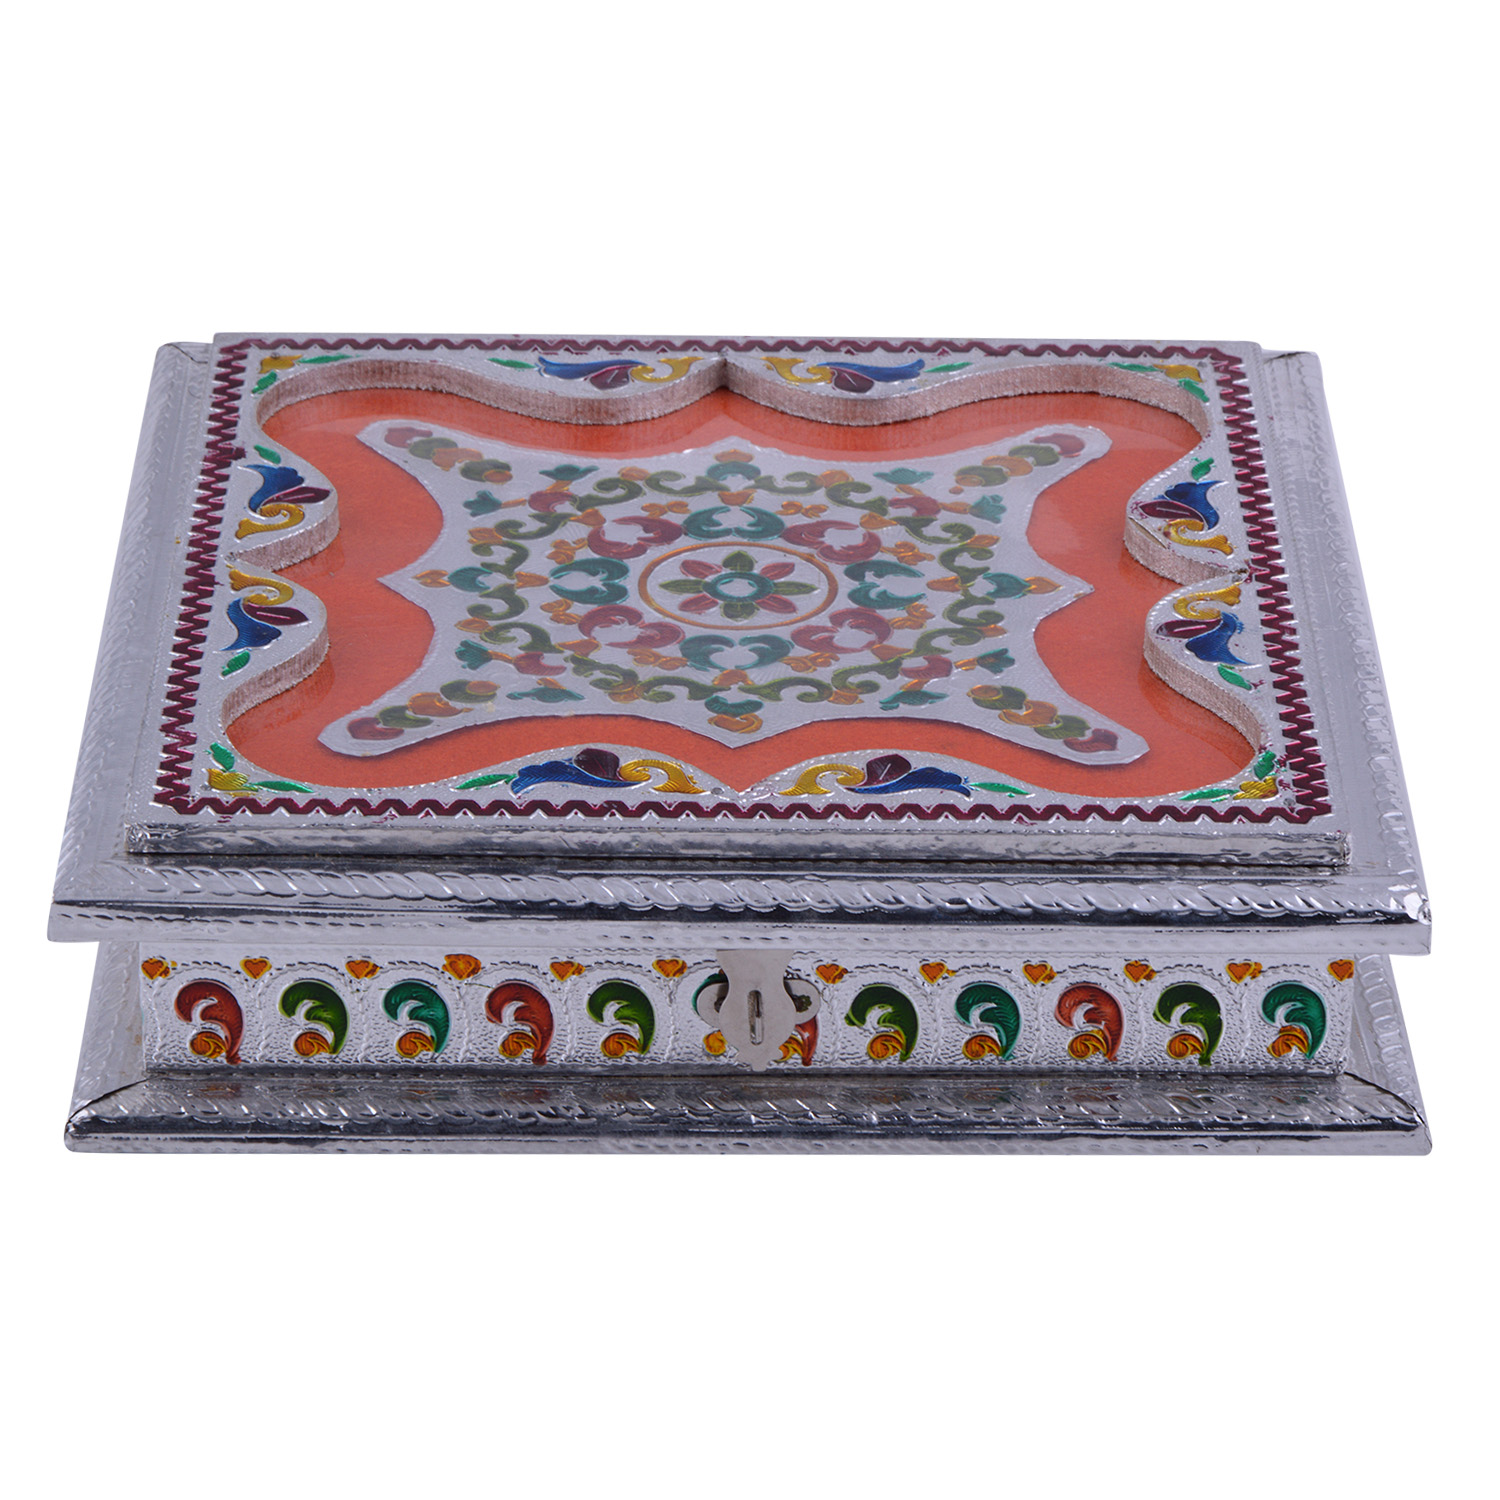 JK Handicraft 10x10 Silver Meena Dry Fruit/ Multipurpose Box  (25cmX25cmX6cm)